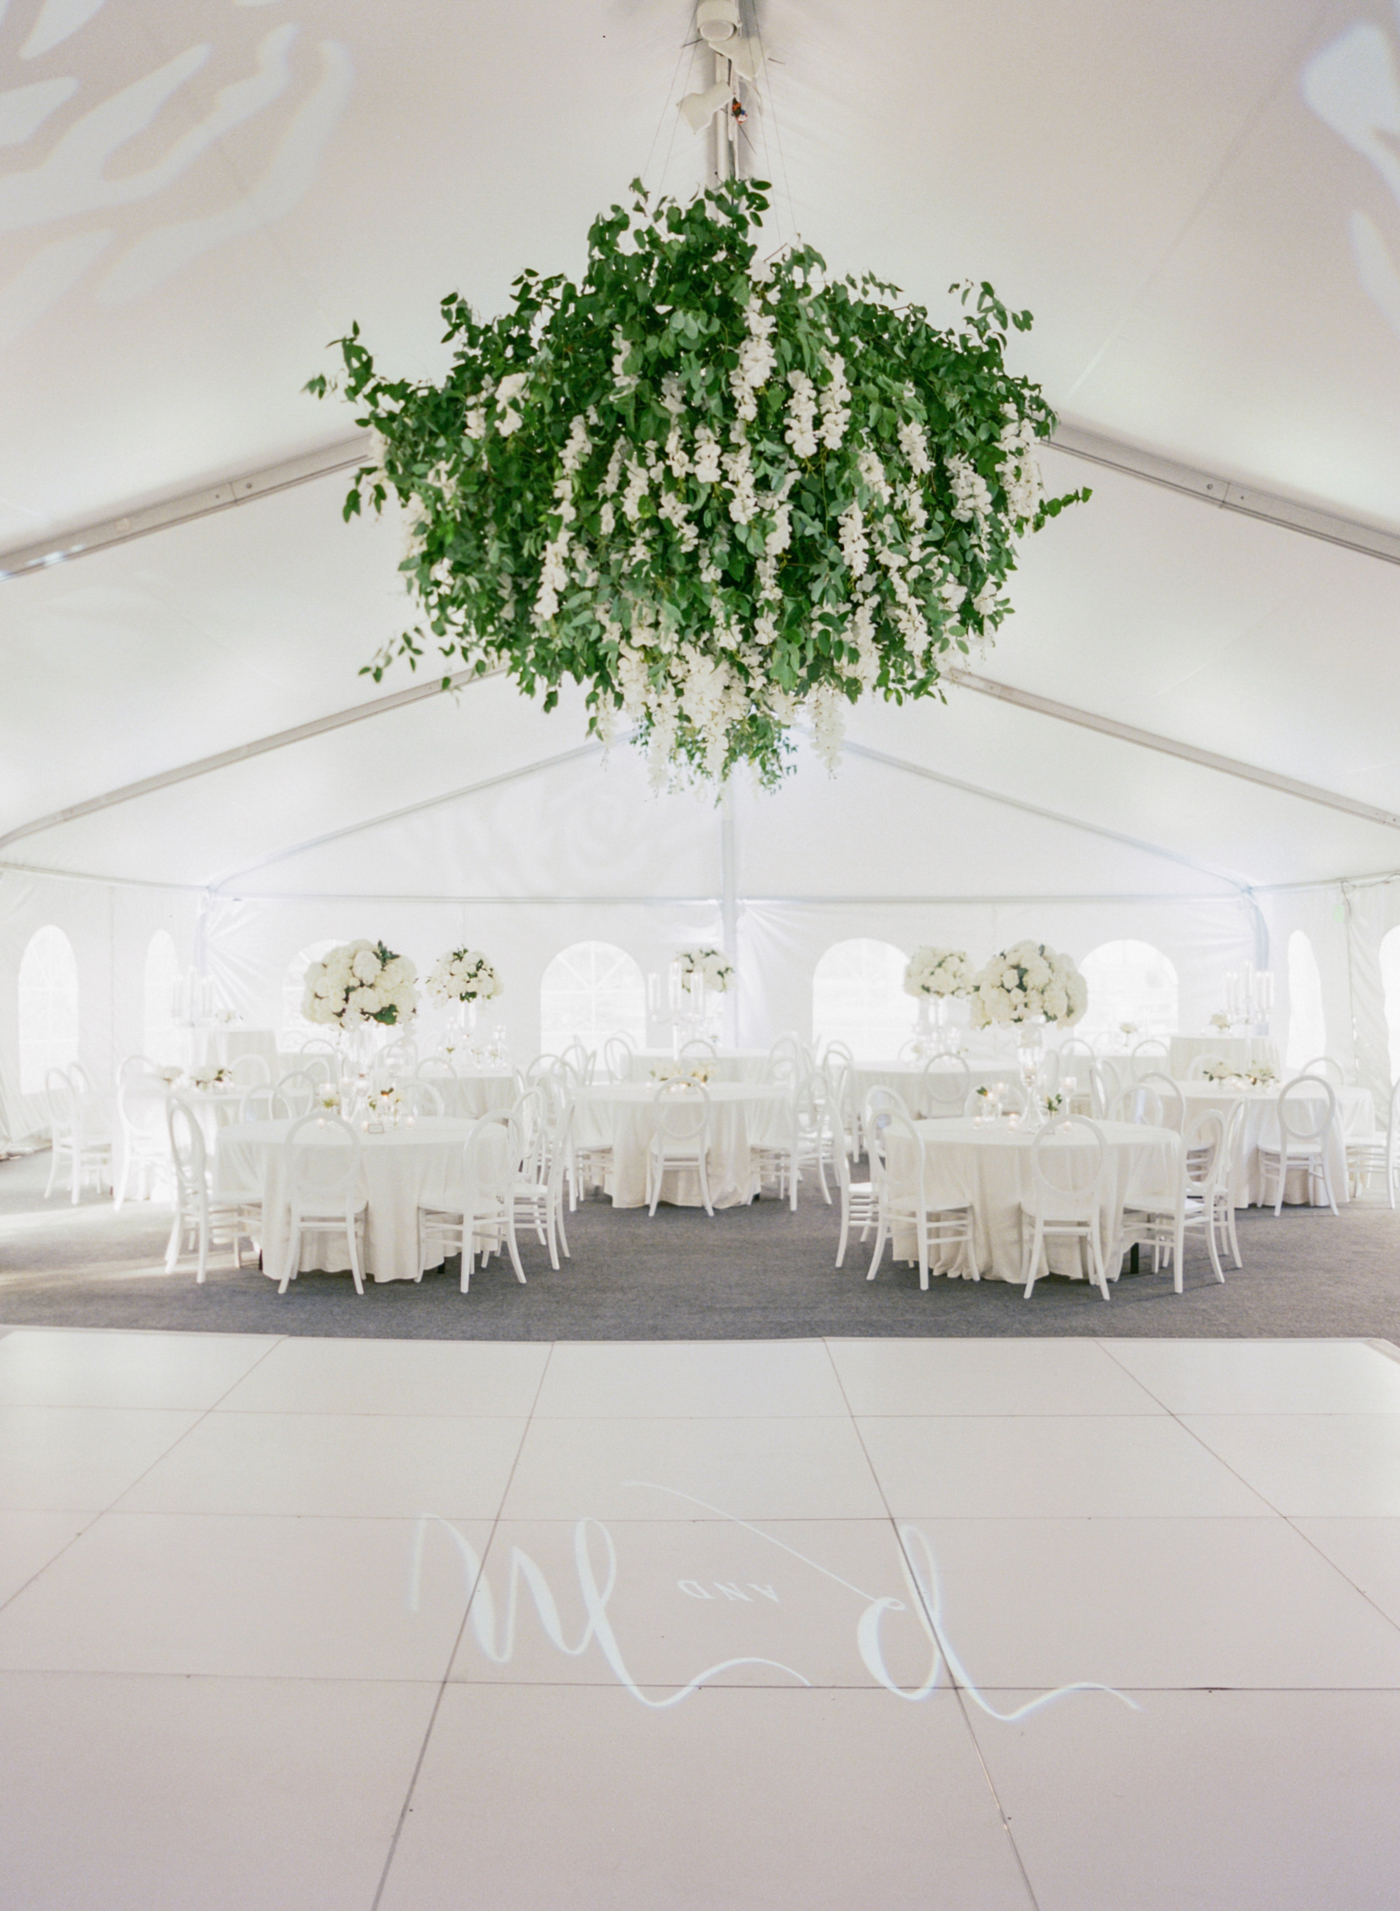 large hanging greenery decor